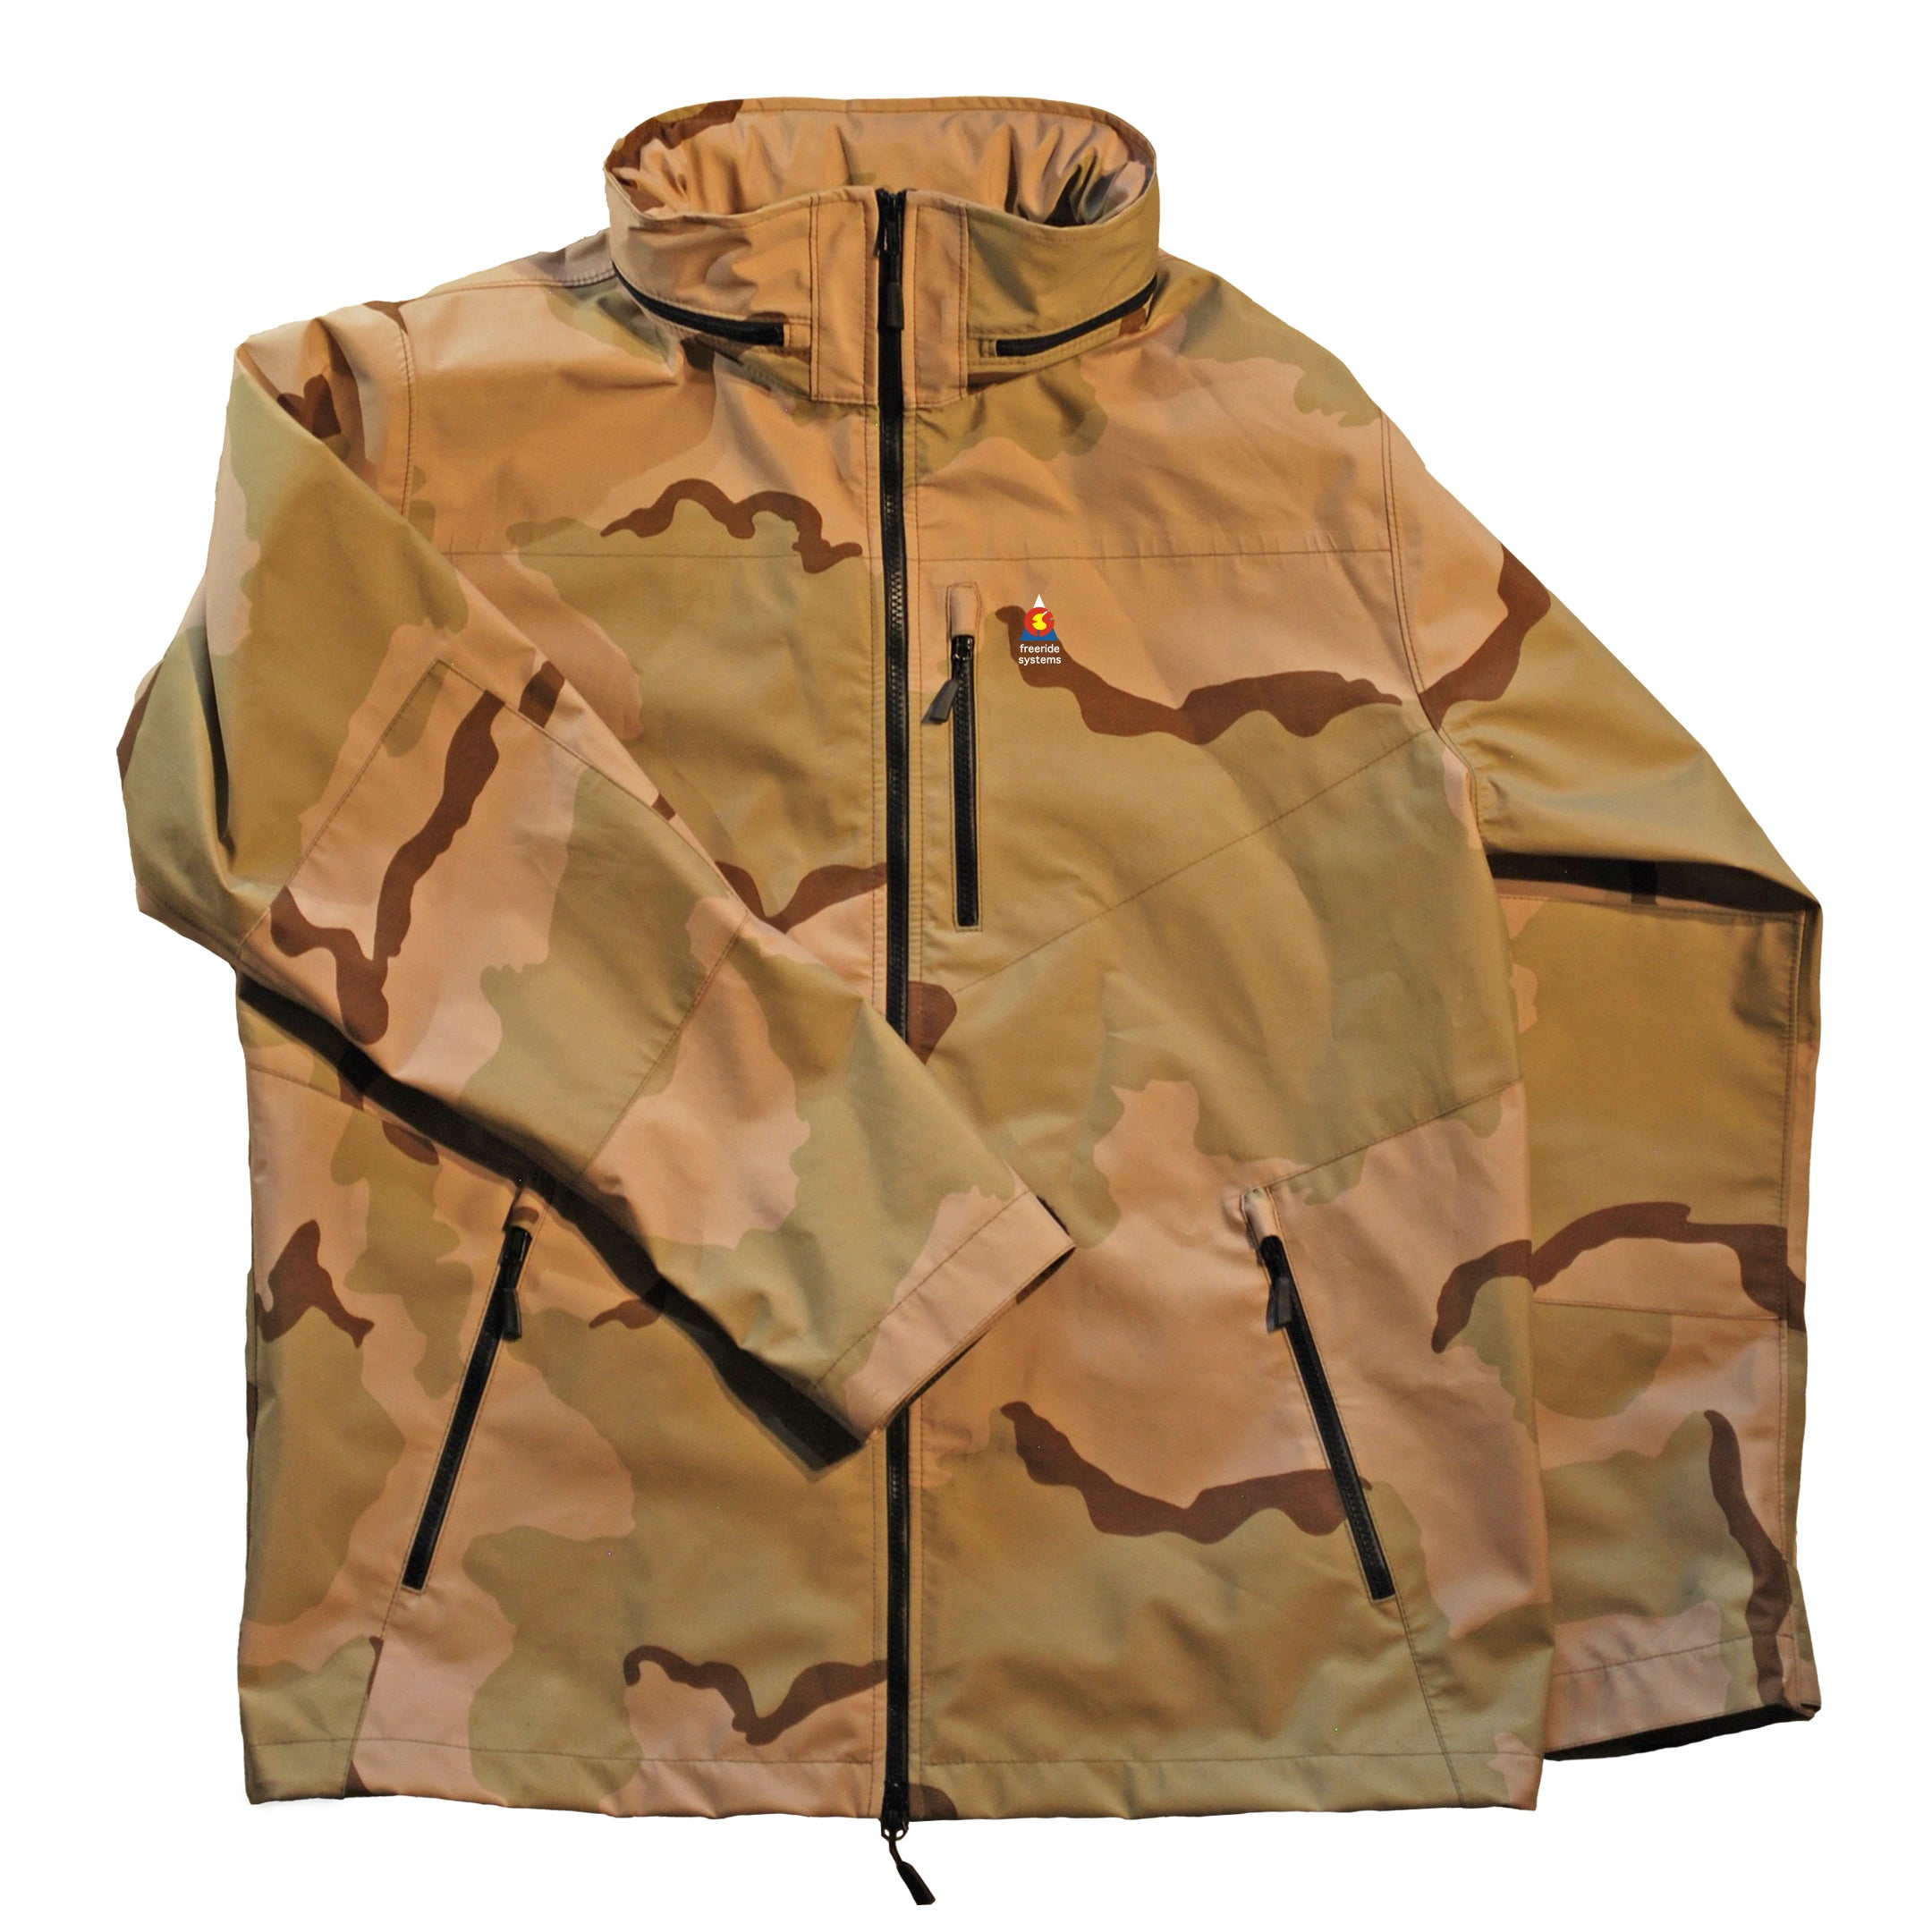 Goretex parka made in usa